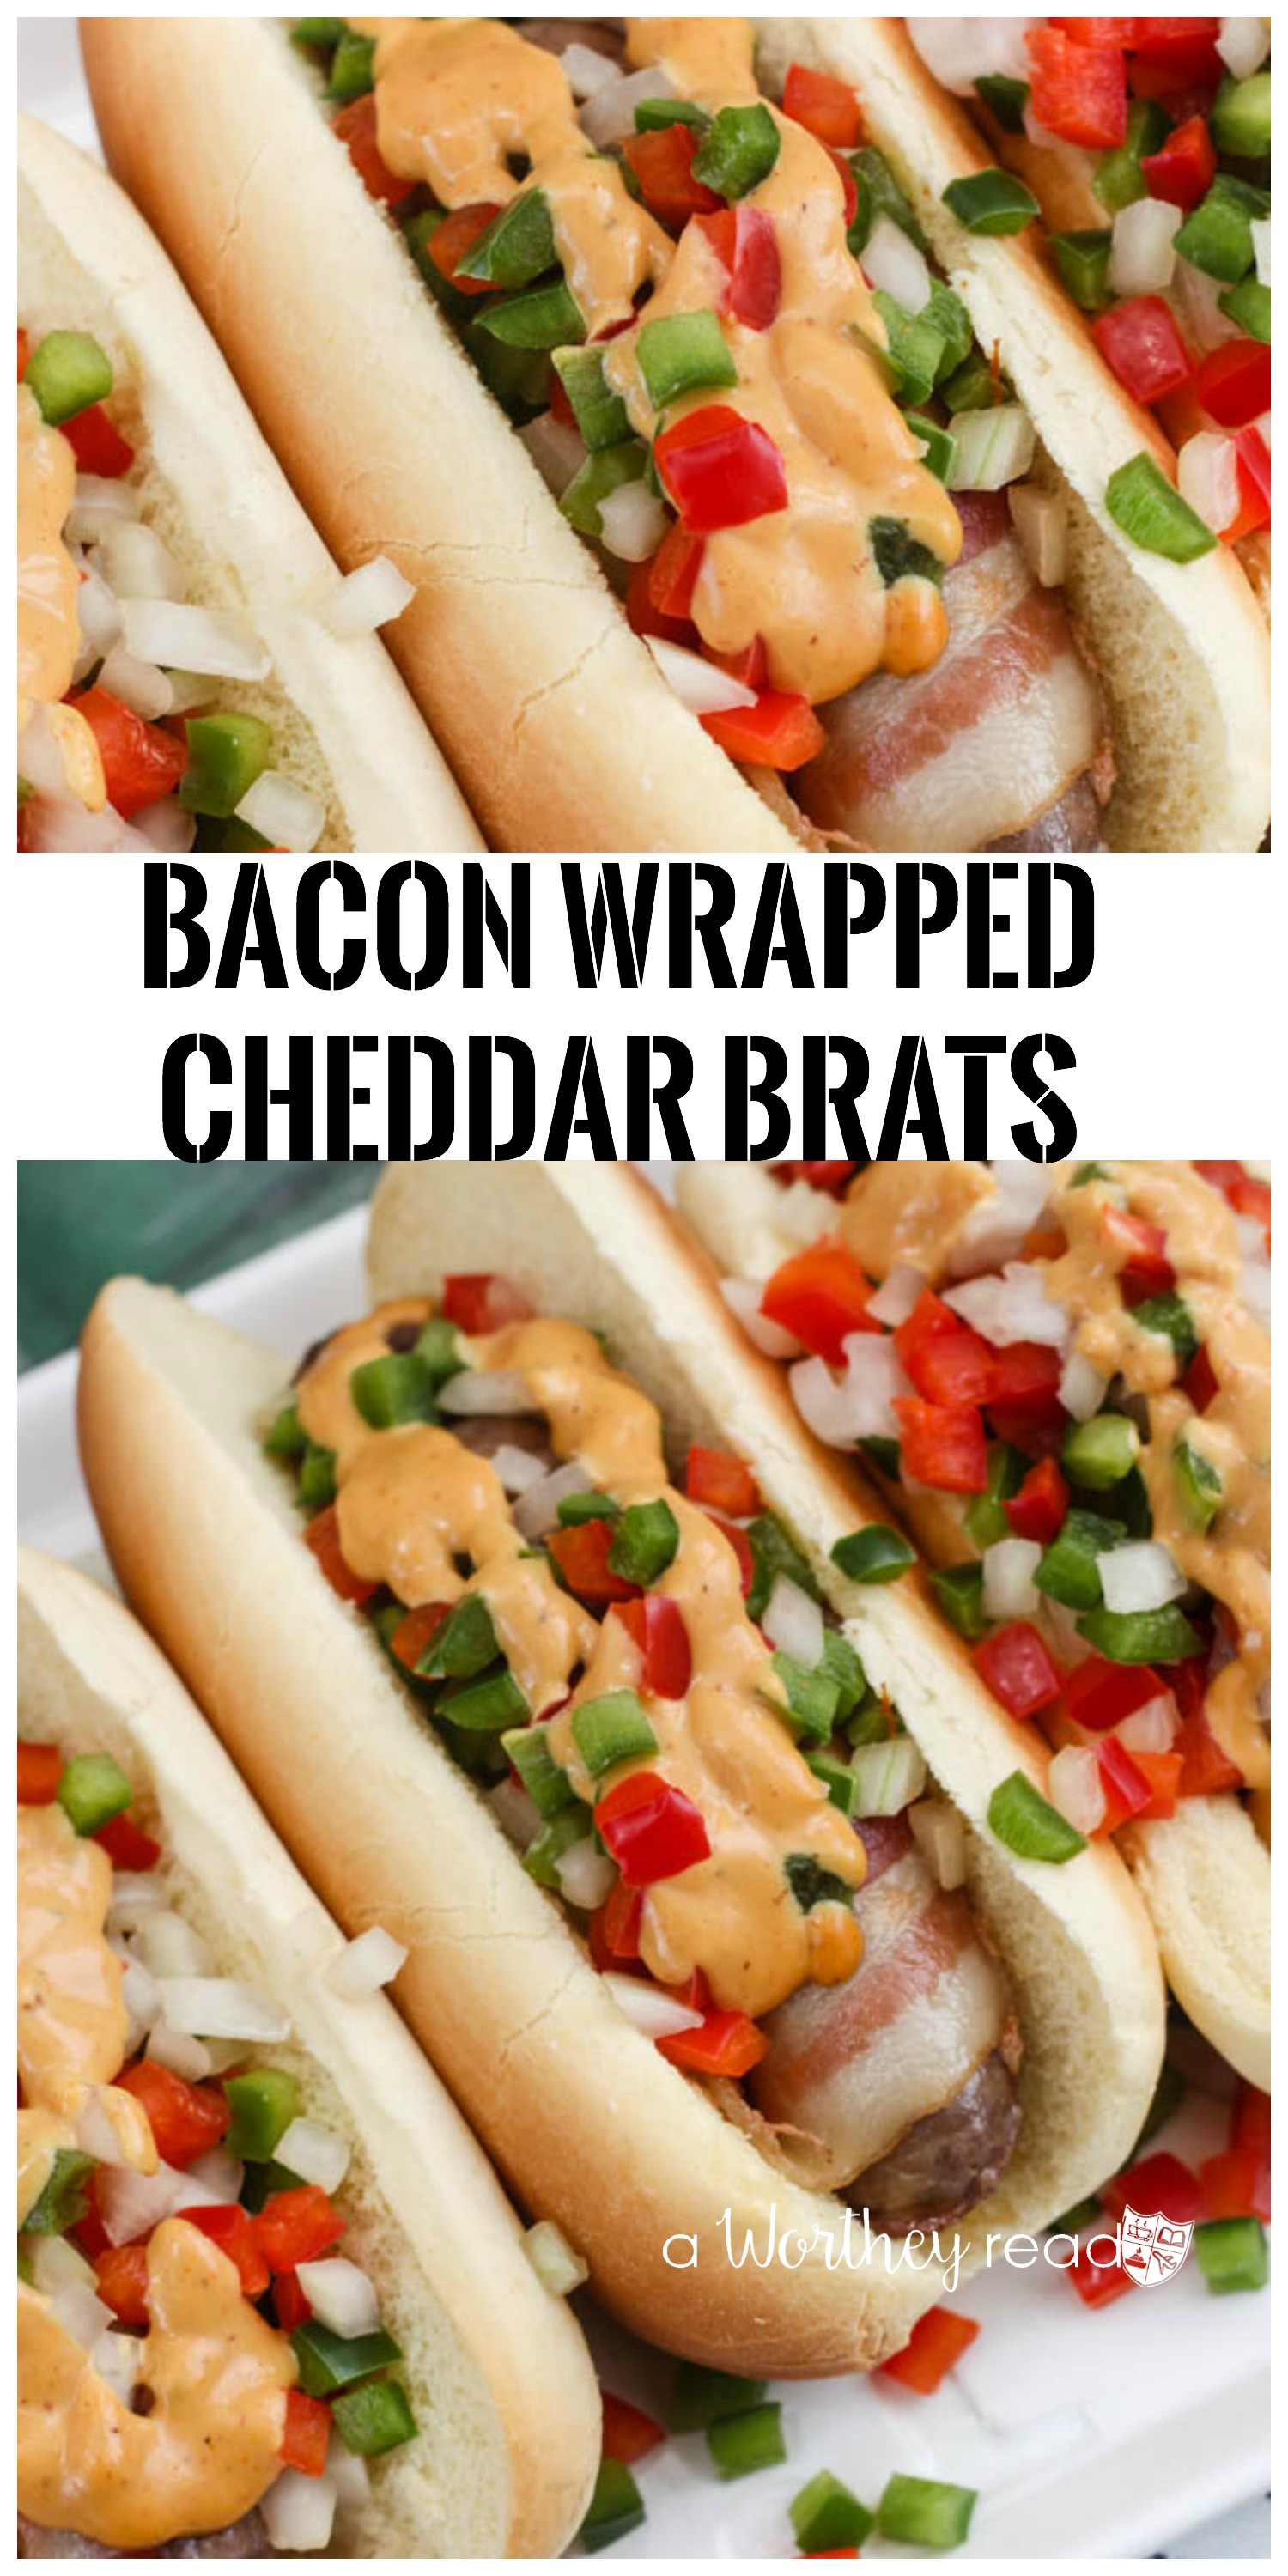 Easy summer time meal under 20 minutes- Bacon Wrapped Cheddar Brats and sweet tomato sauce